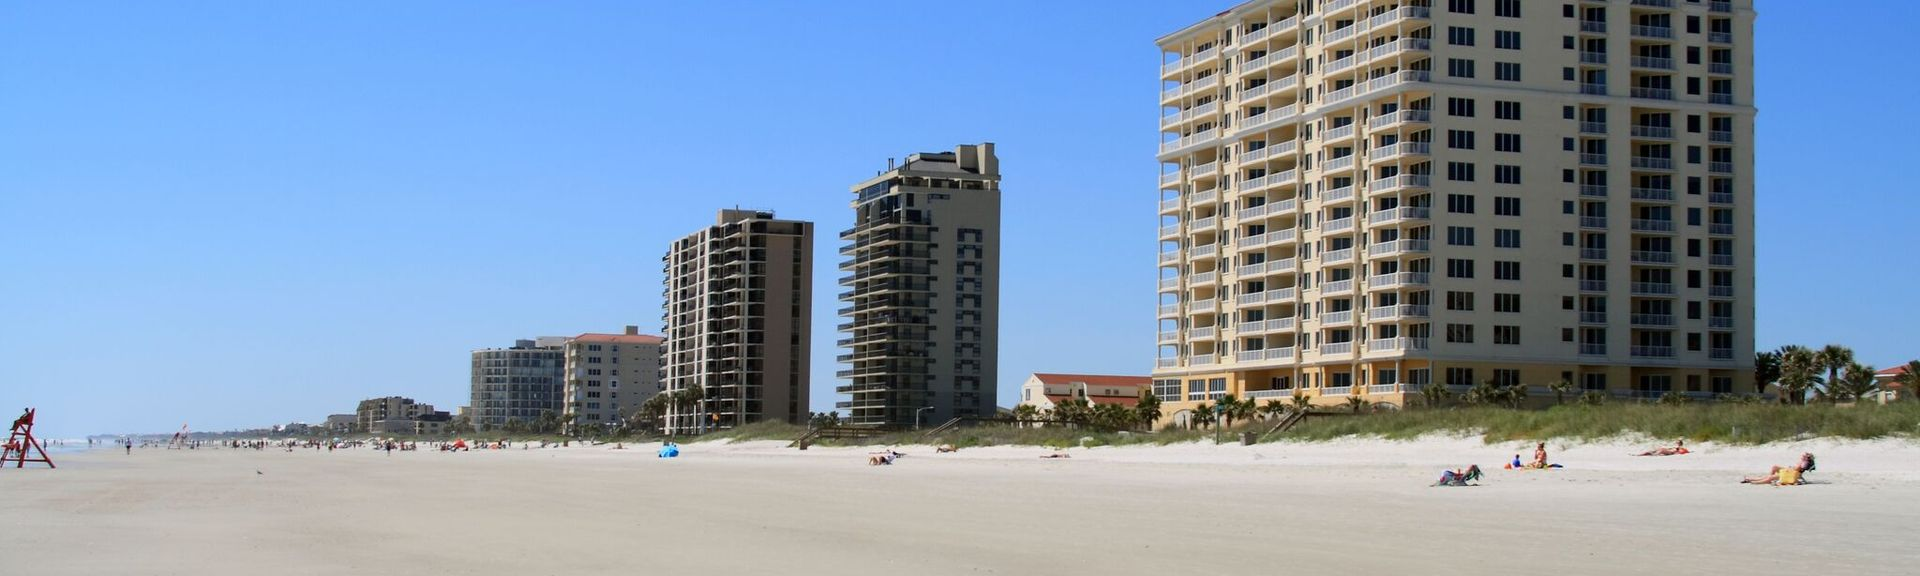 Jacksonville Beach, FL, USA